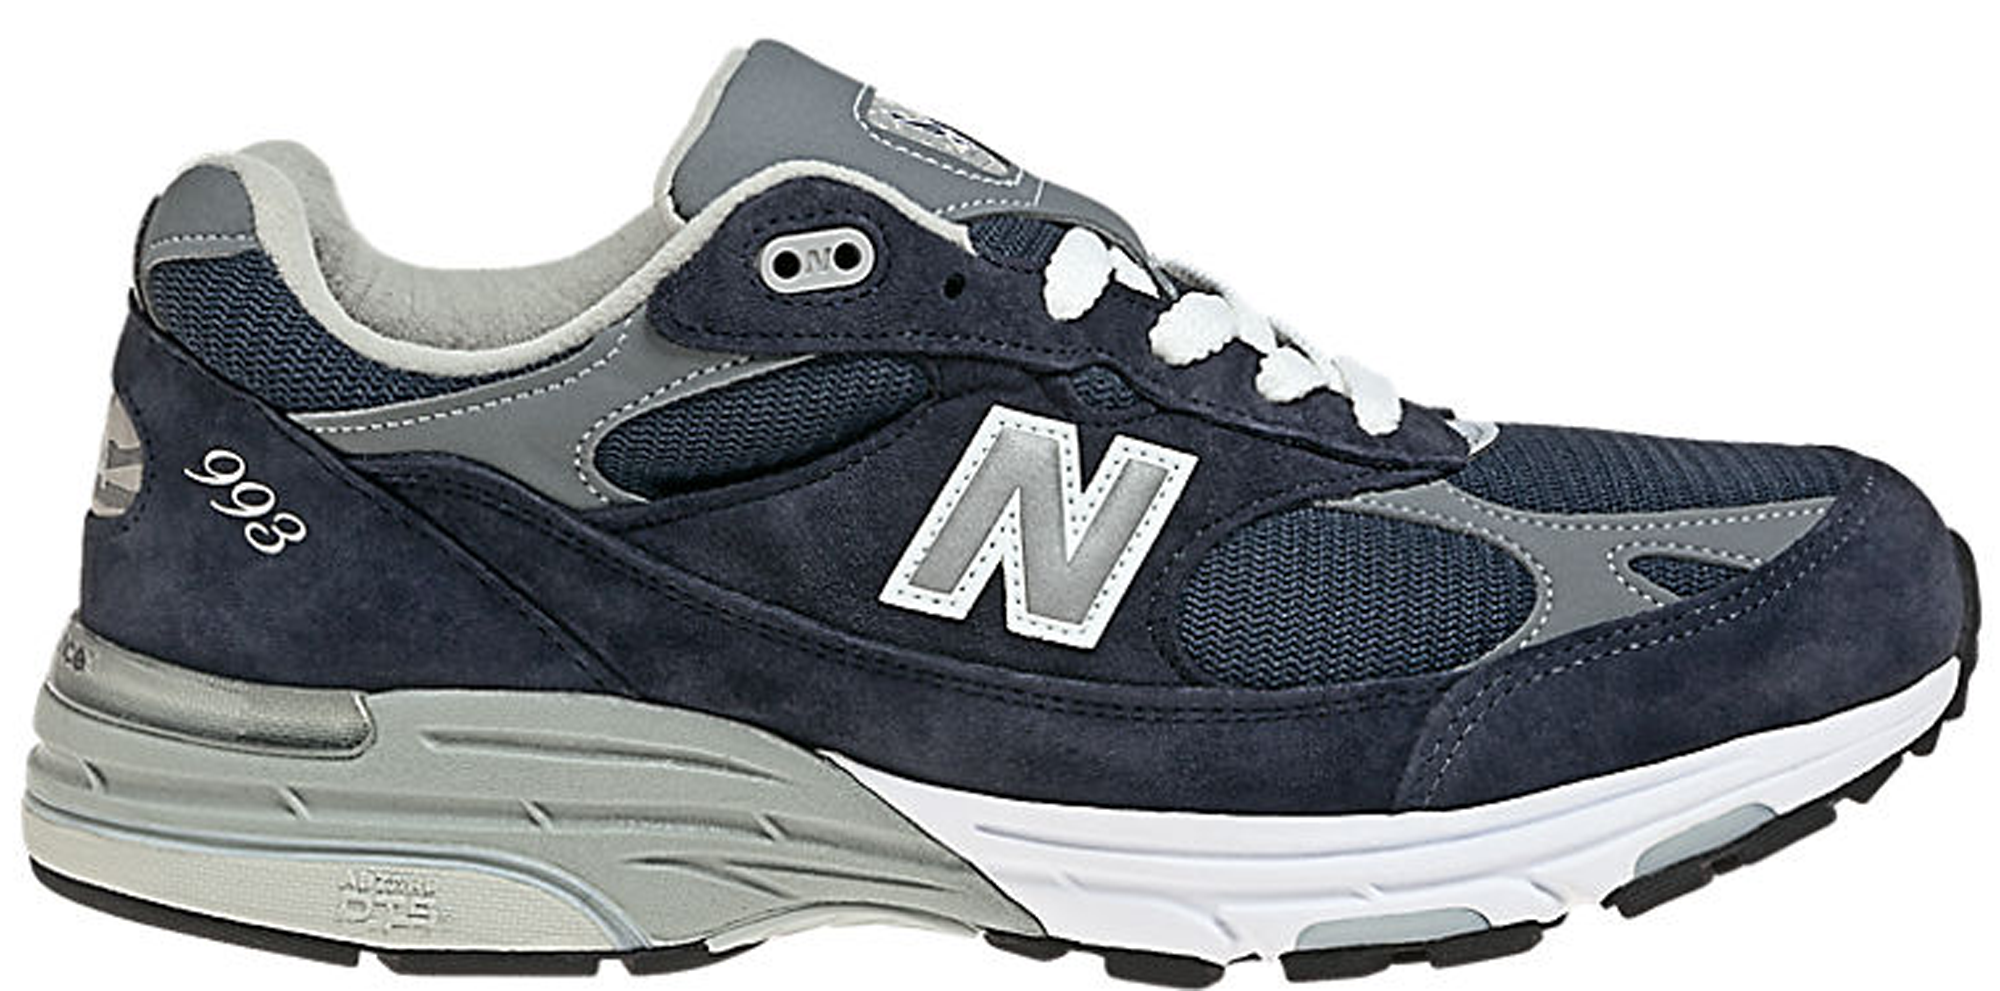 New Balance 993 Air Force - Sneakers